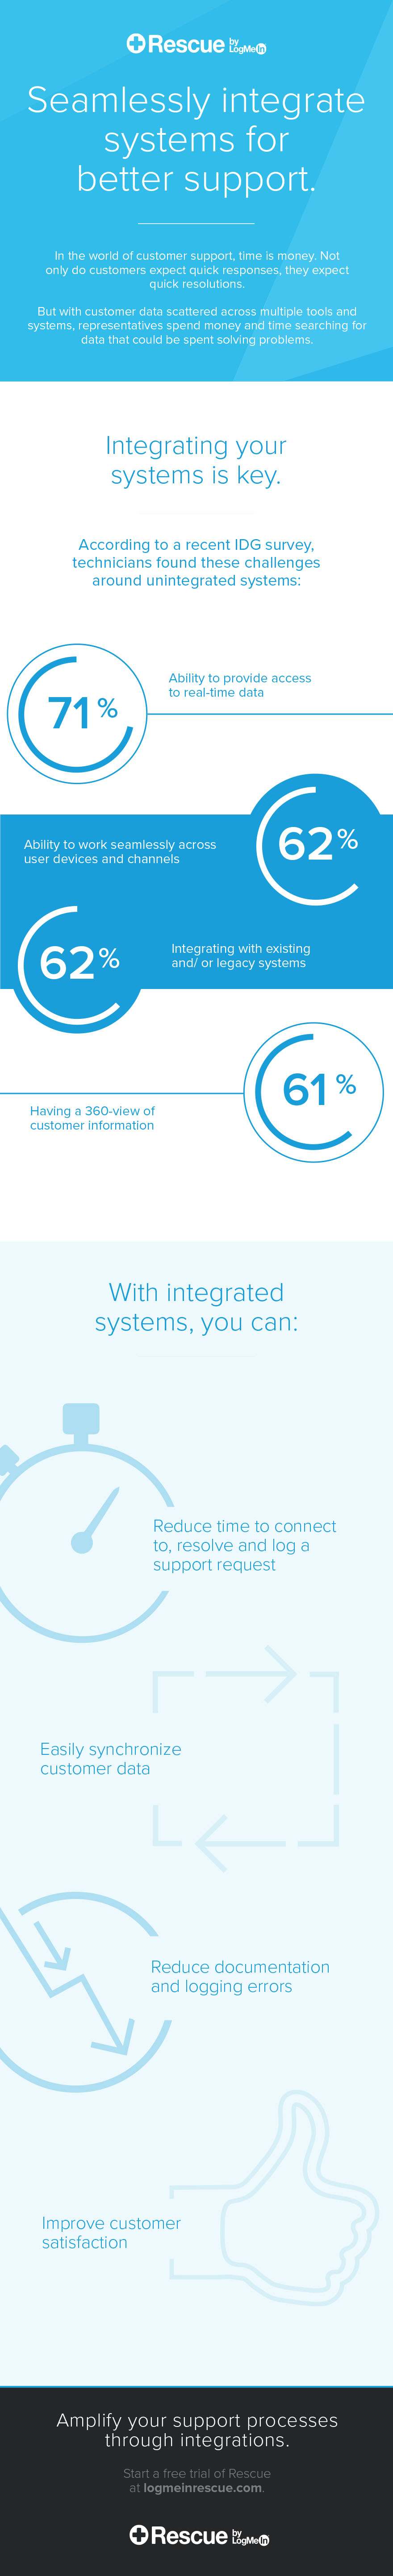 Infographic: Seamlessly integrate systems for better support